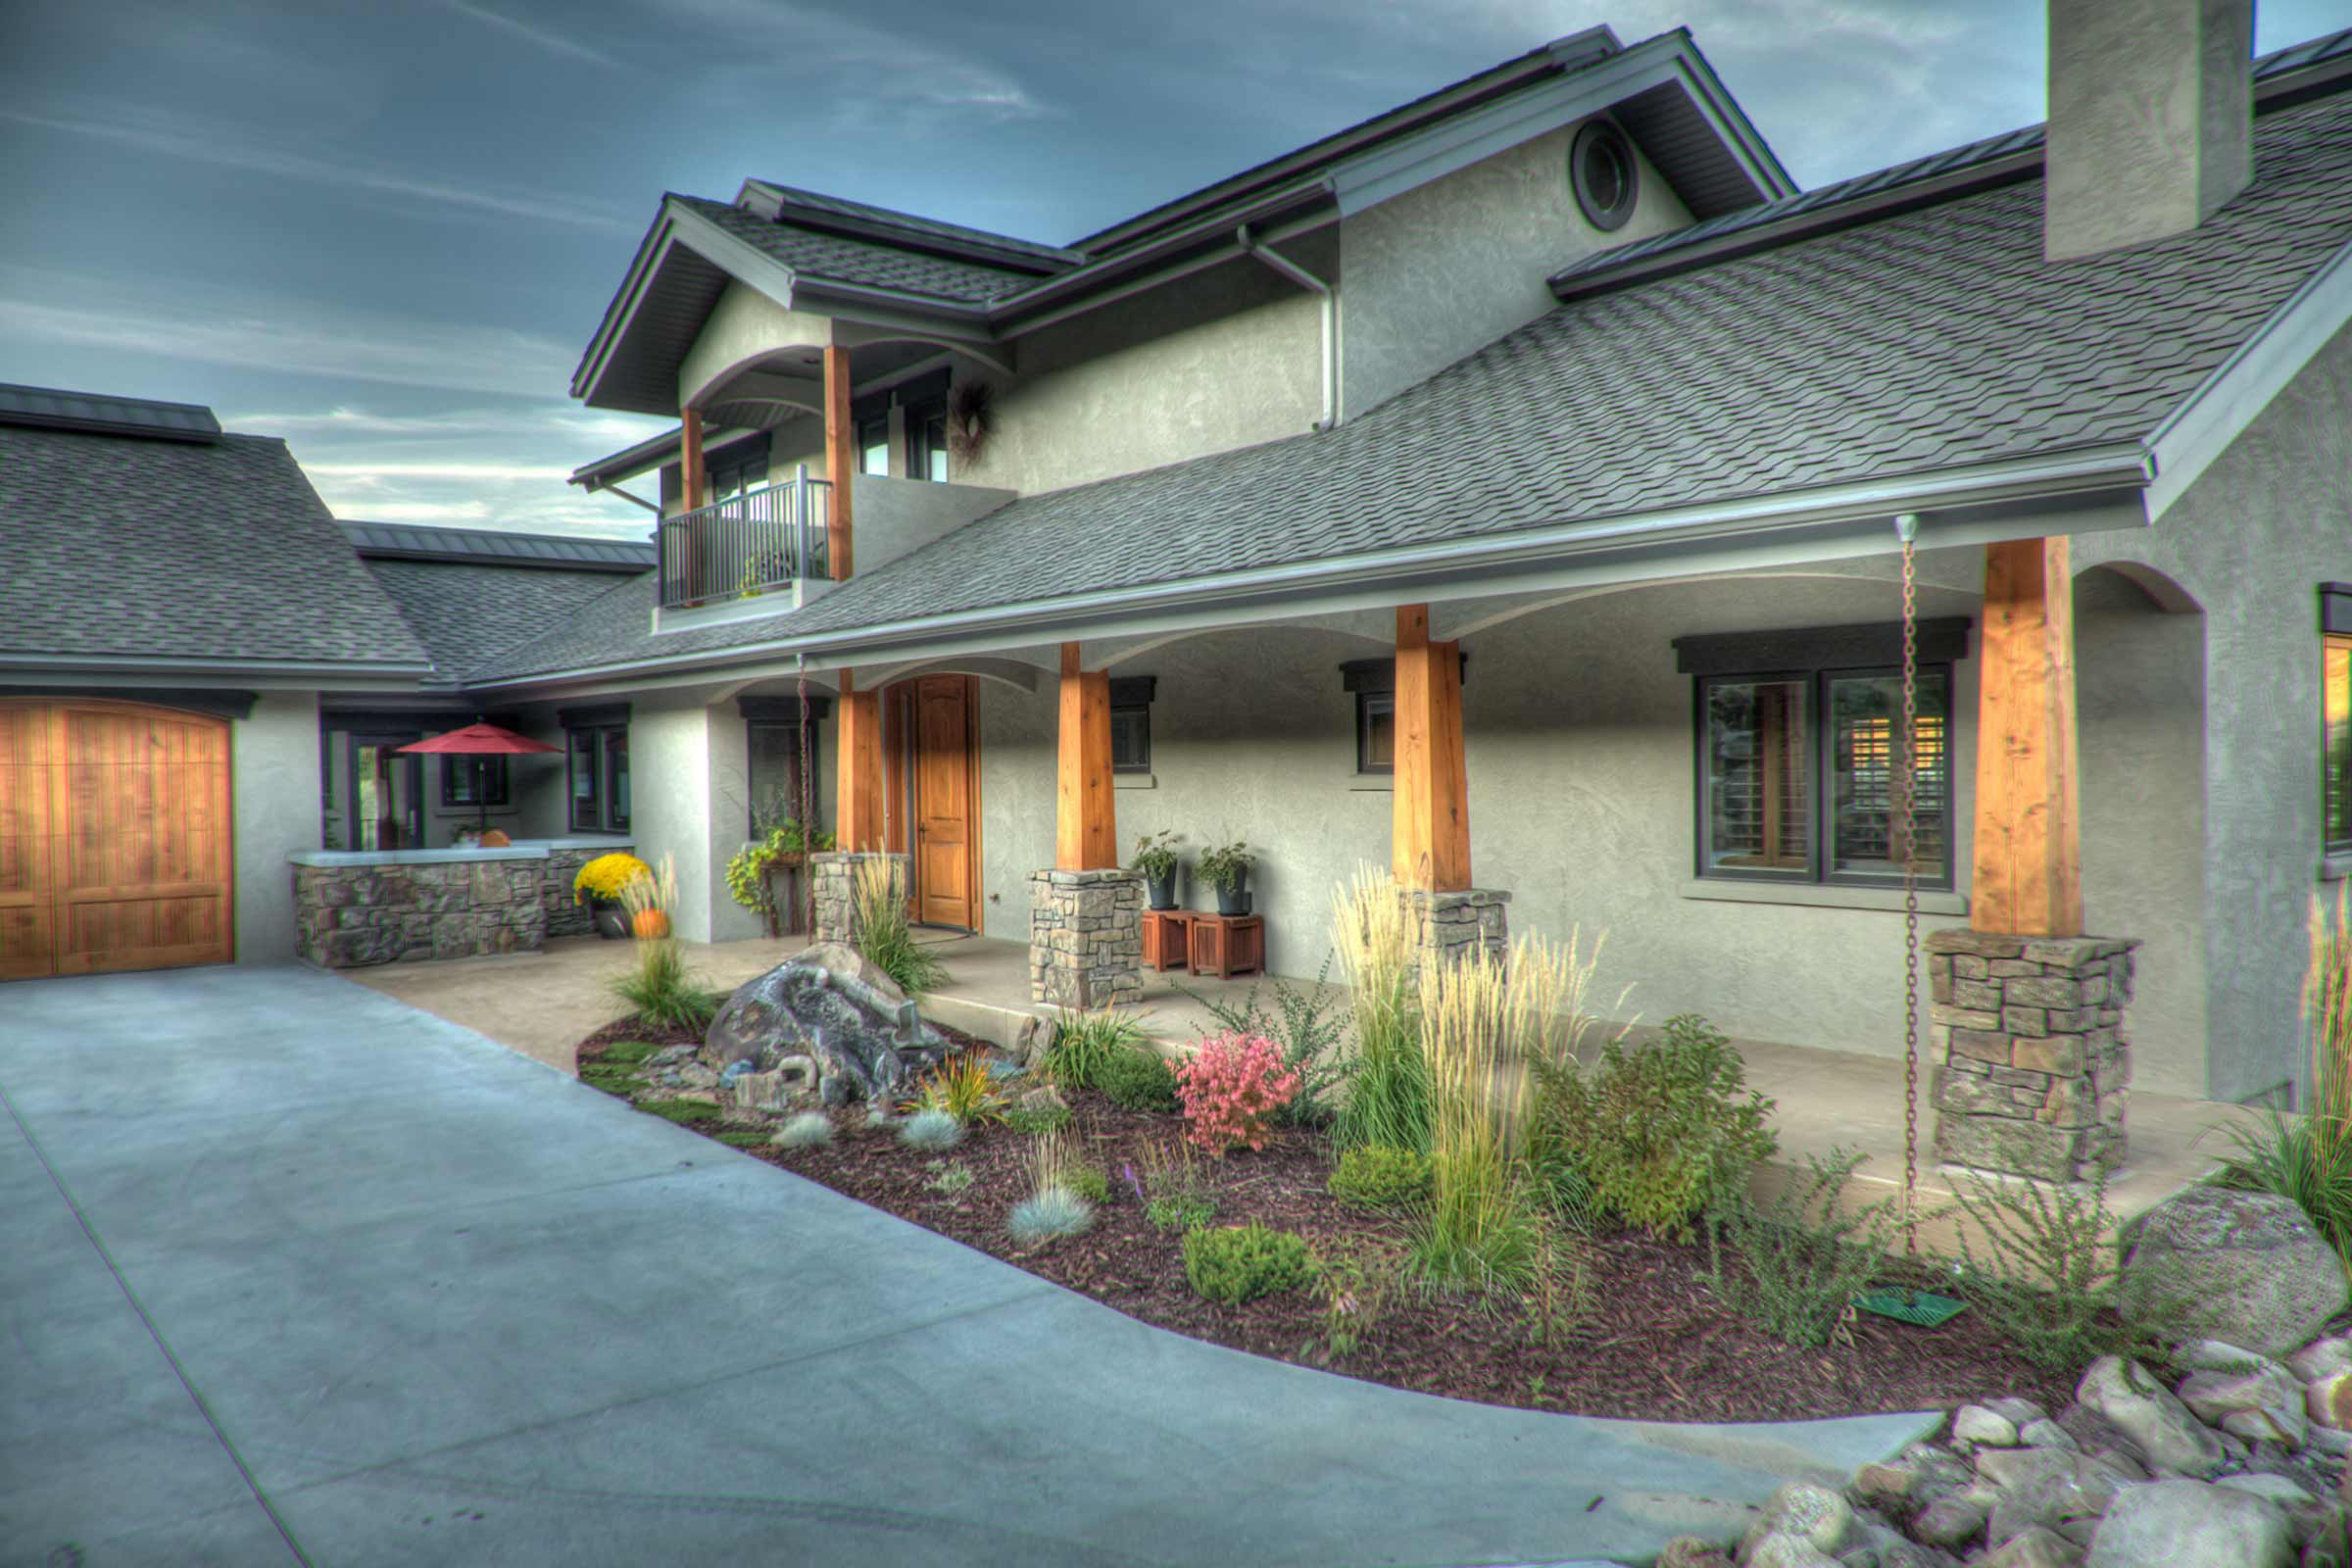 Outback Landscape professional landscaping in Idaho